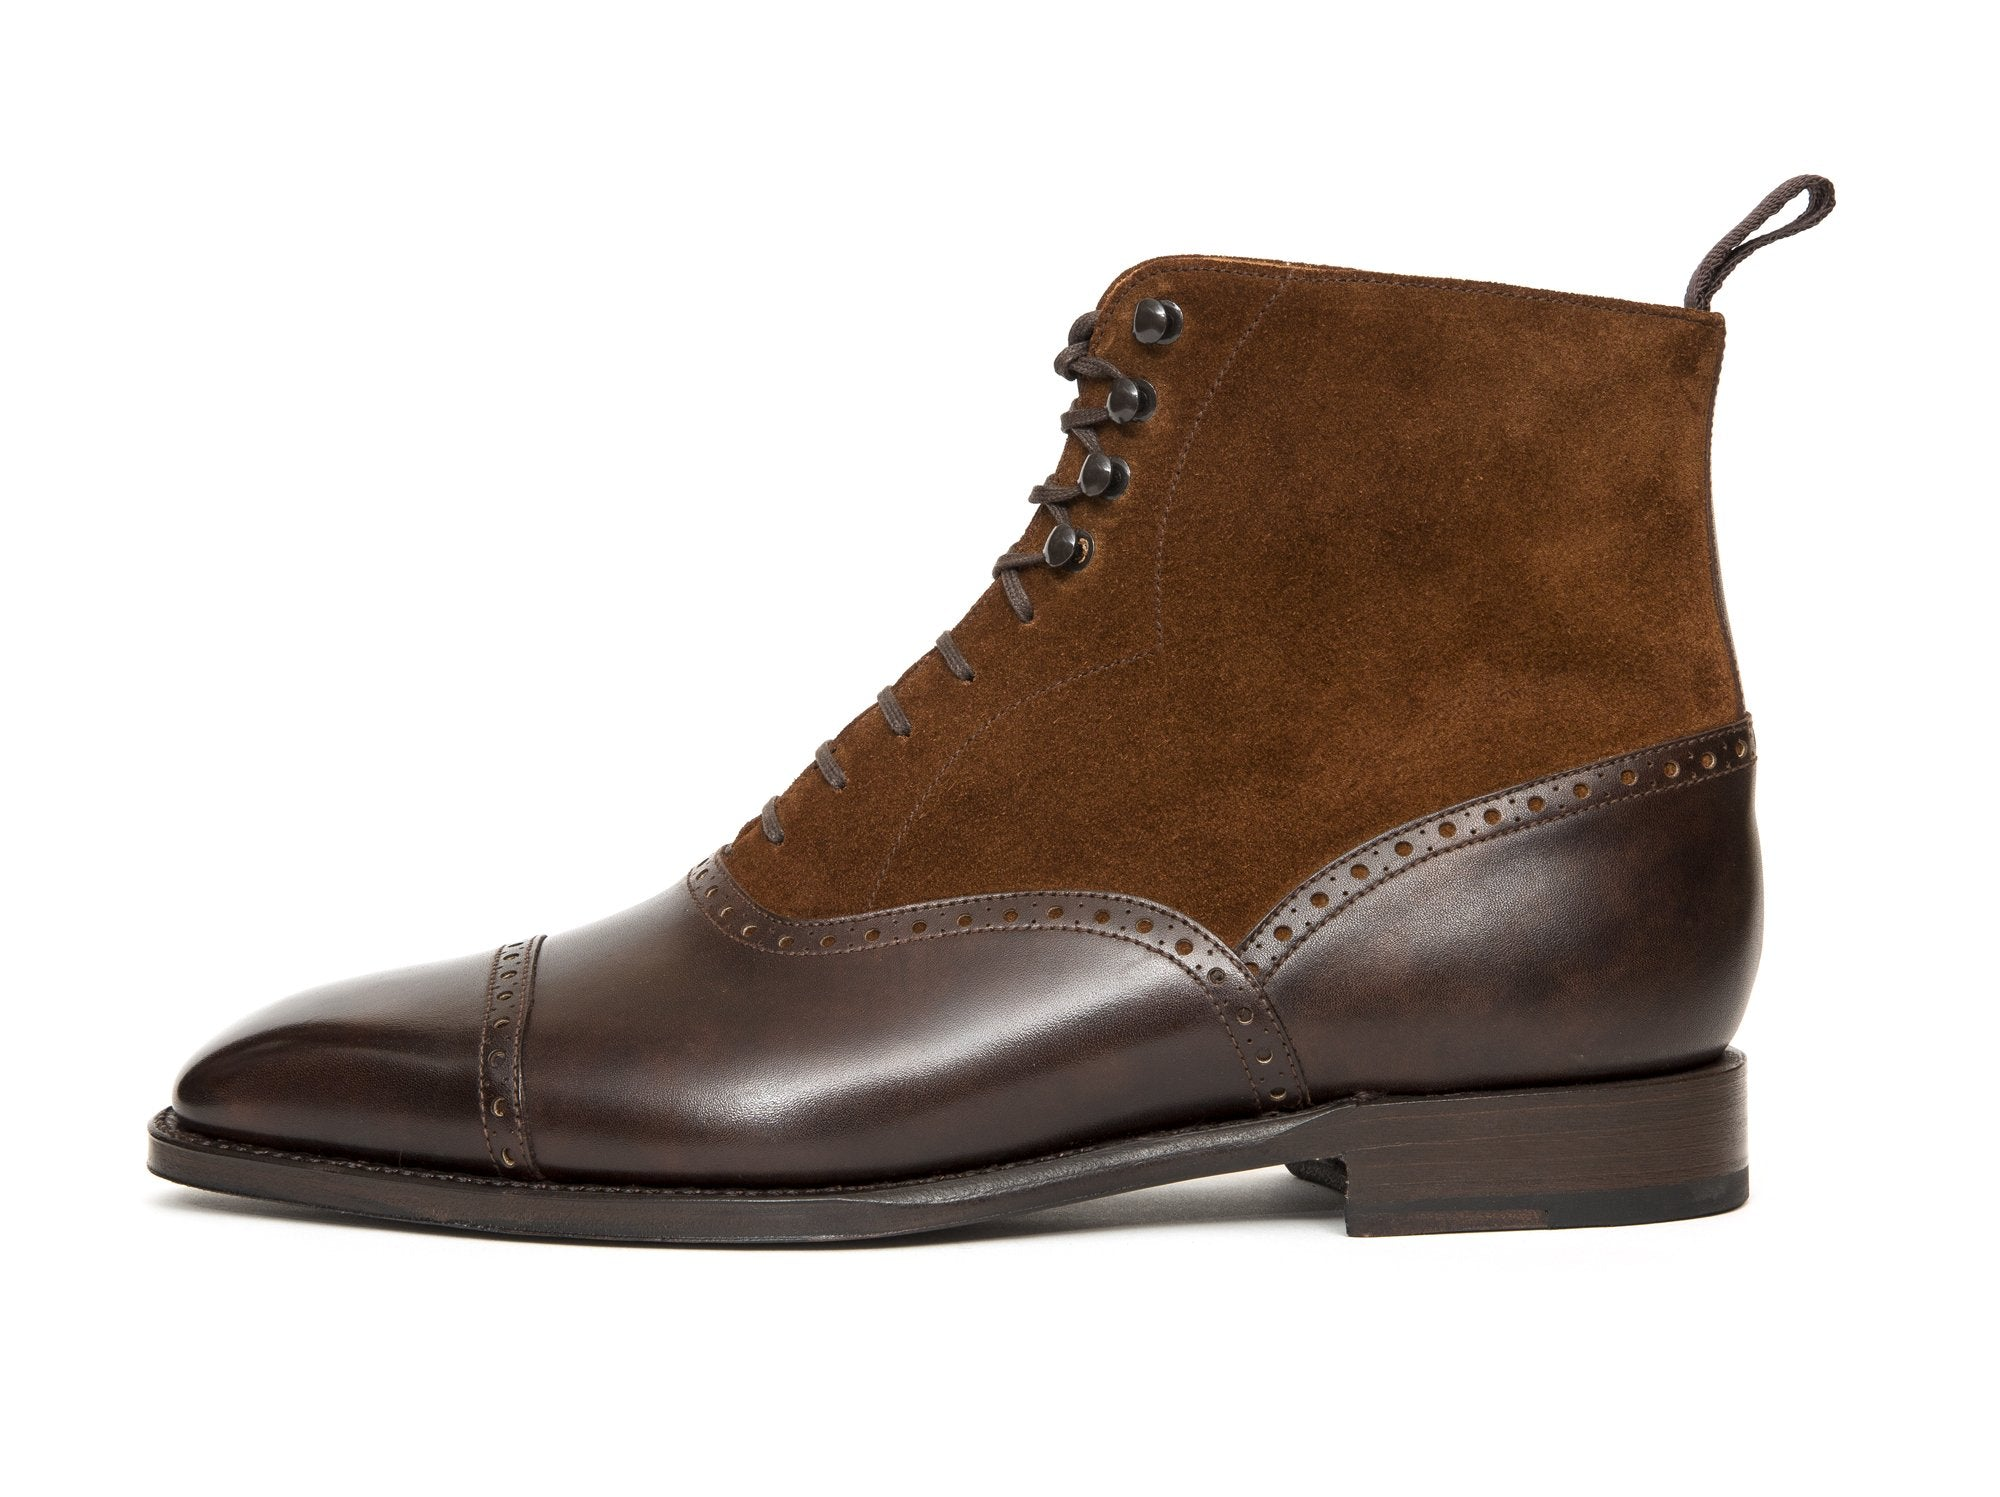 J.FitzPatrick Footwear - David - Dark Brown Museum Calf / Snuff Suede - LPB Last - Single Leather Sole